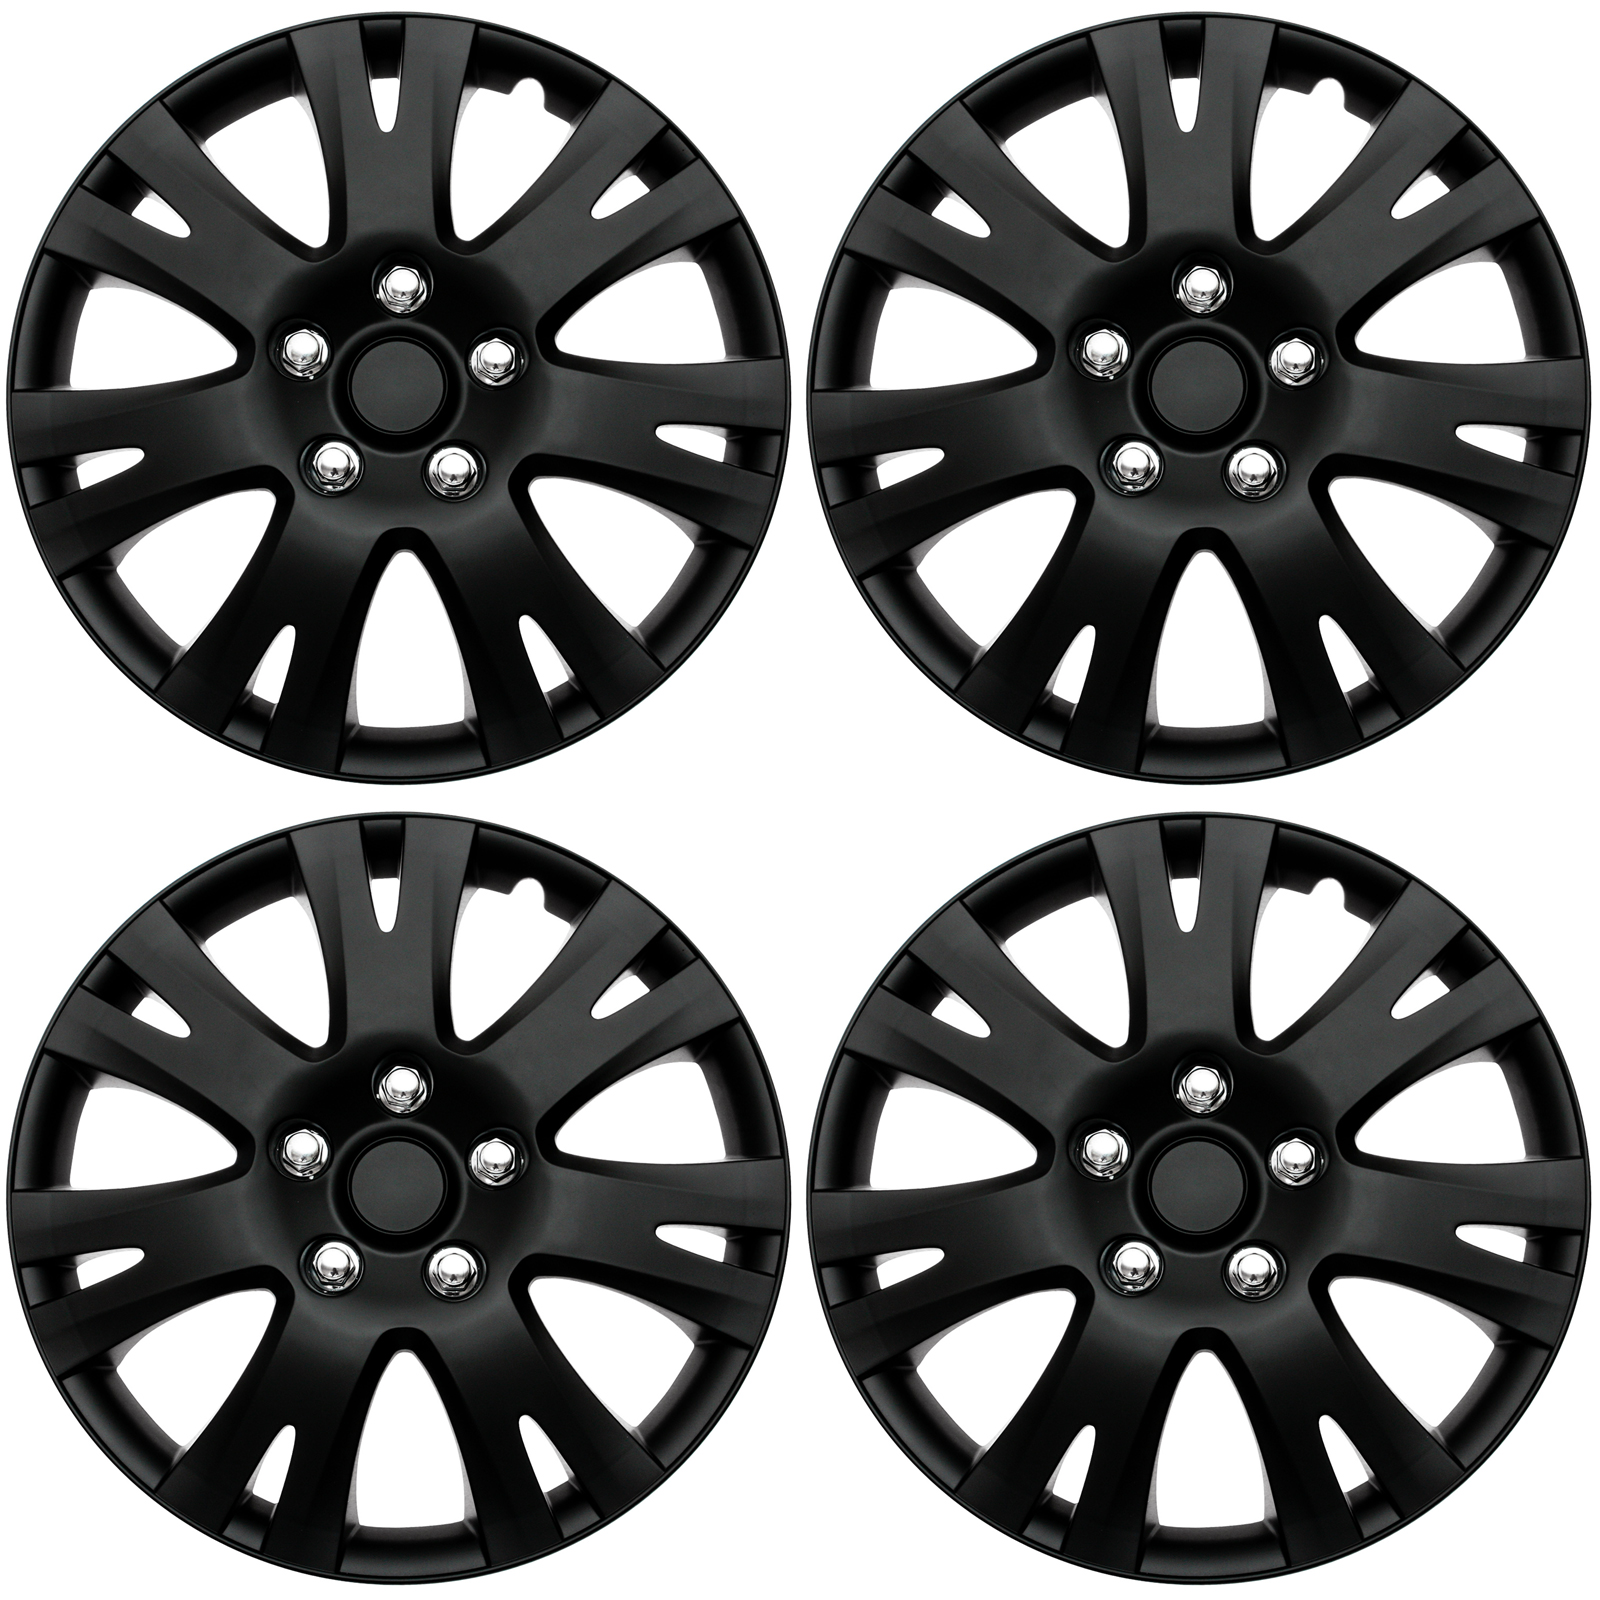 4 Pc Set Of 16 Quot Matte Black Hub Caps For Oem Steel Wheel Cover Center Cap Covers 643129815652 Ebay